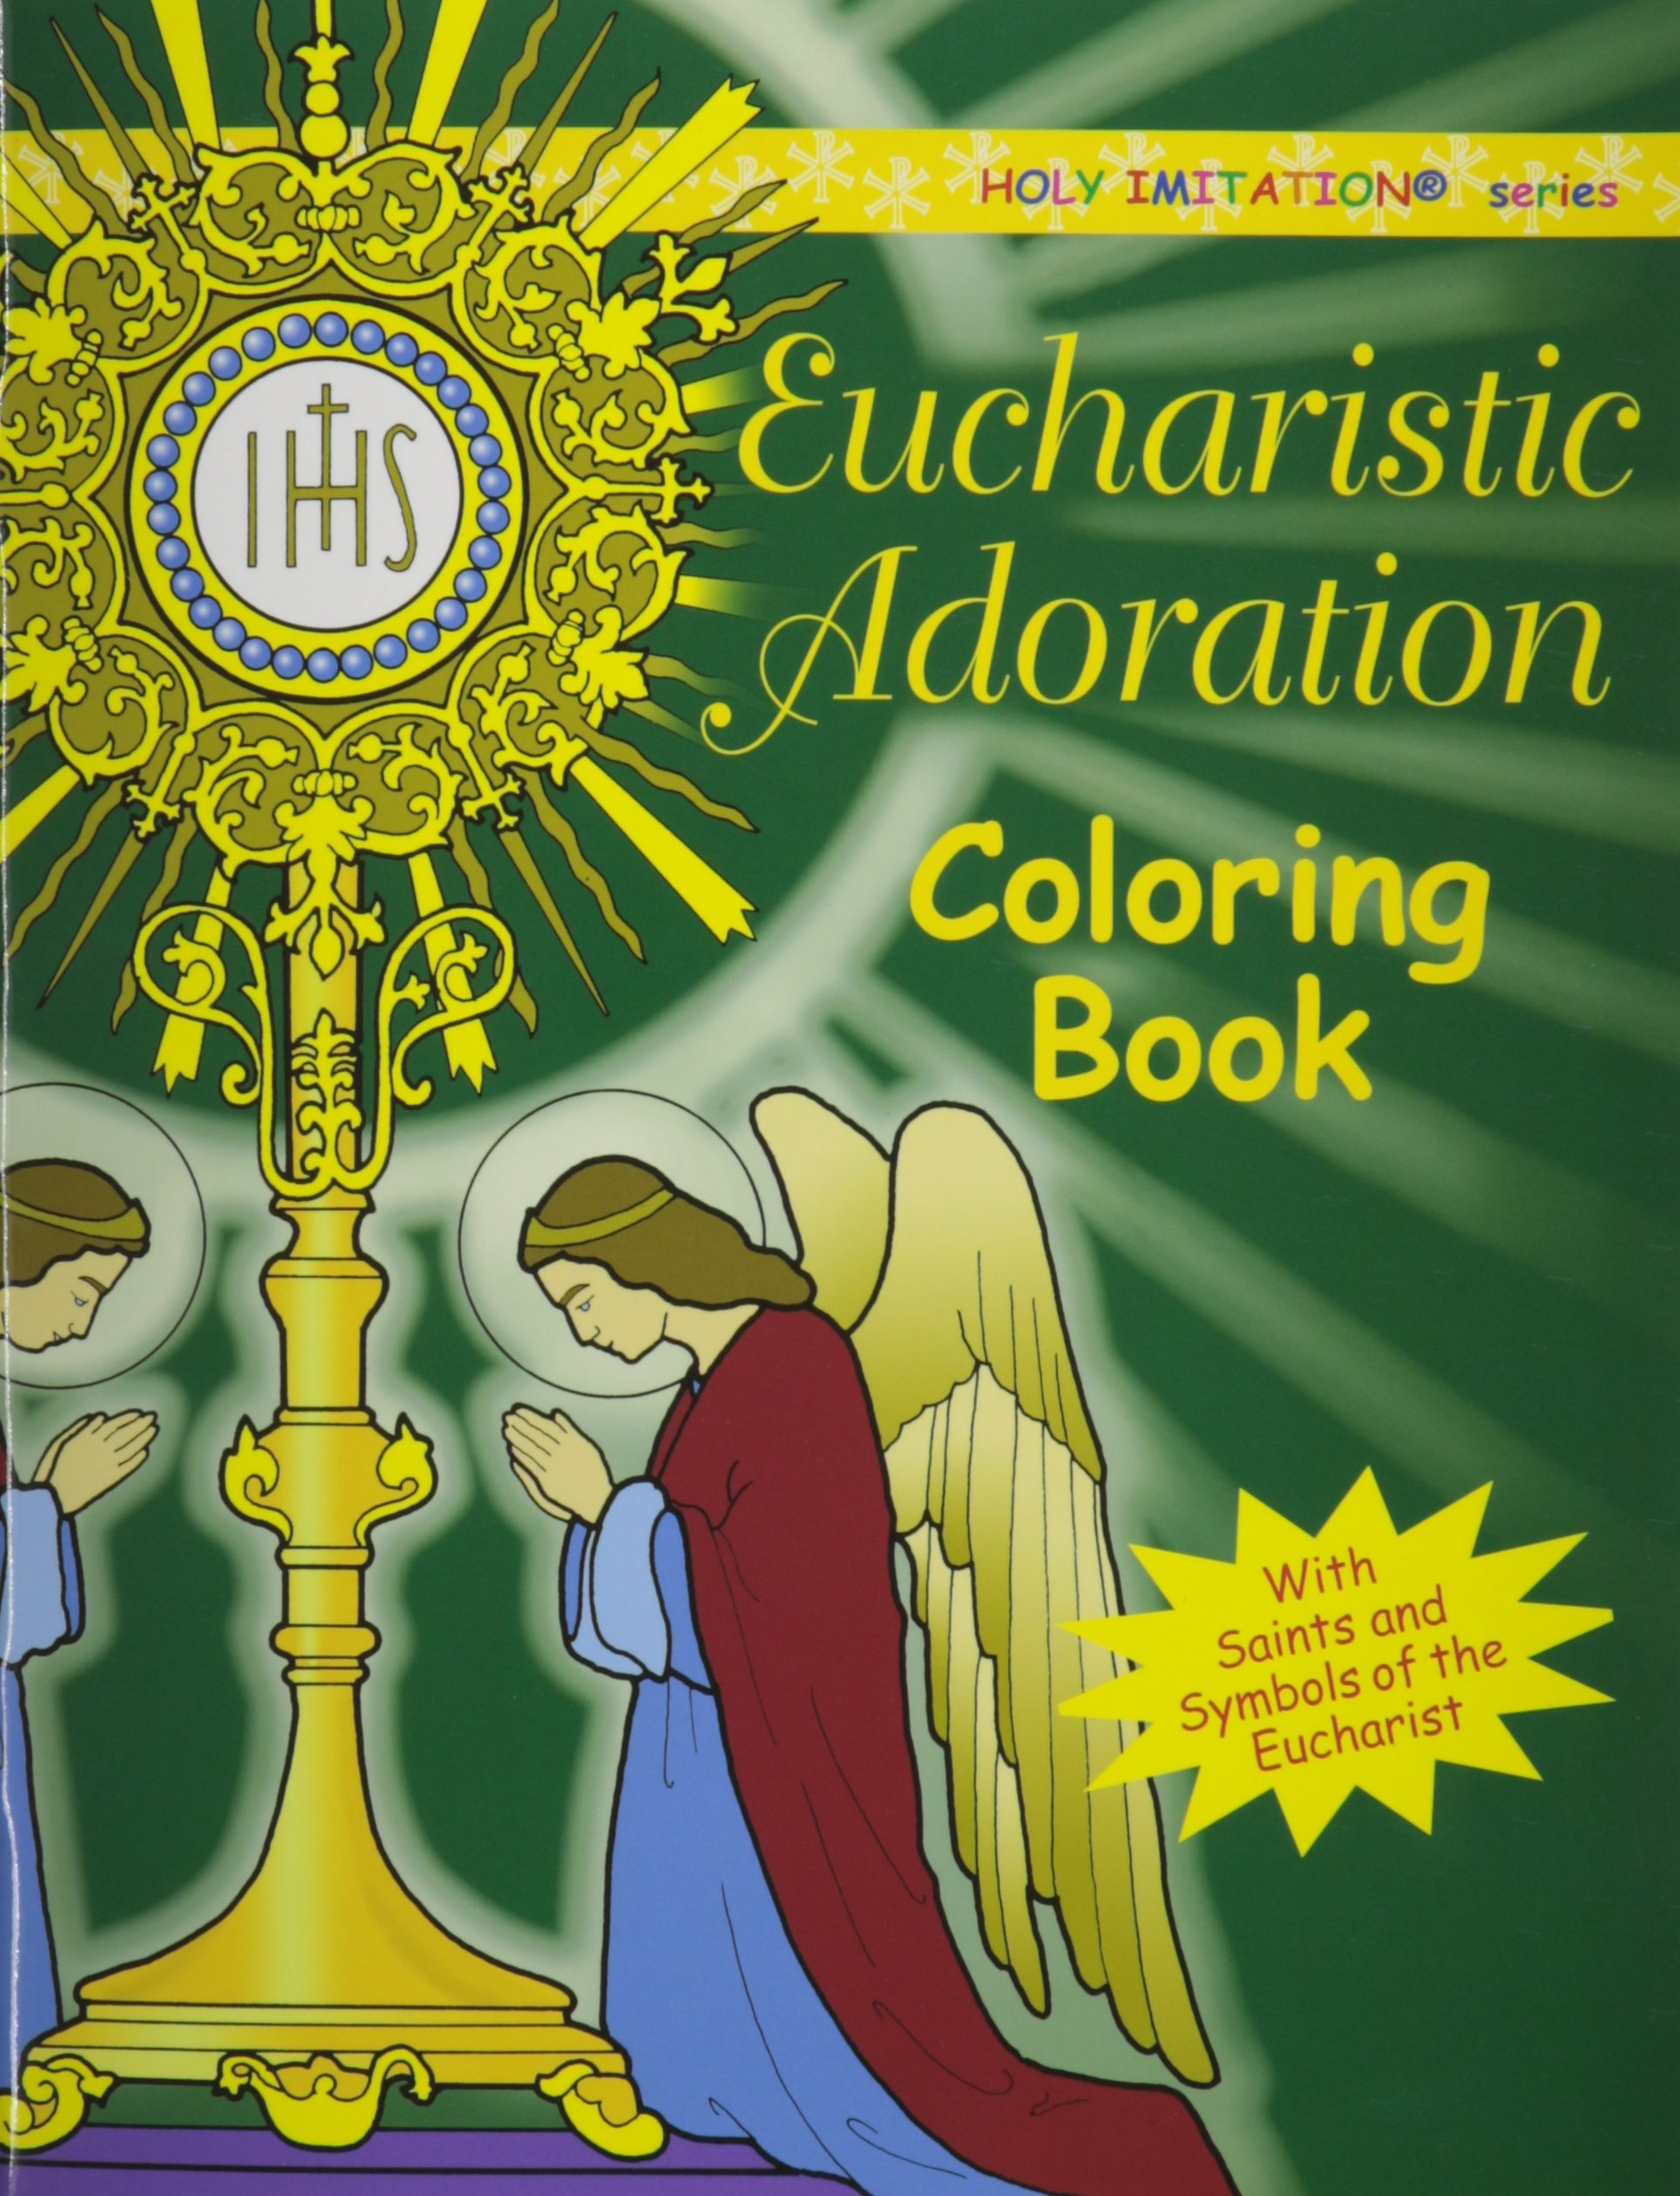 Eucharistic Adoration With Saints And Symbols Of The Eucharist